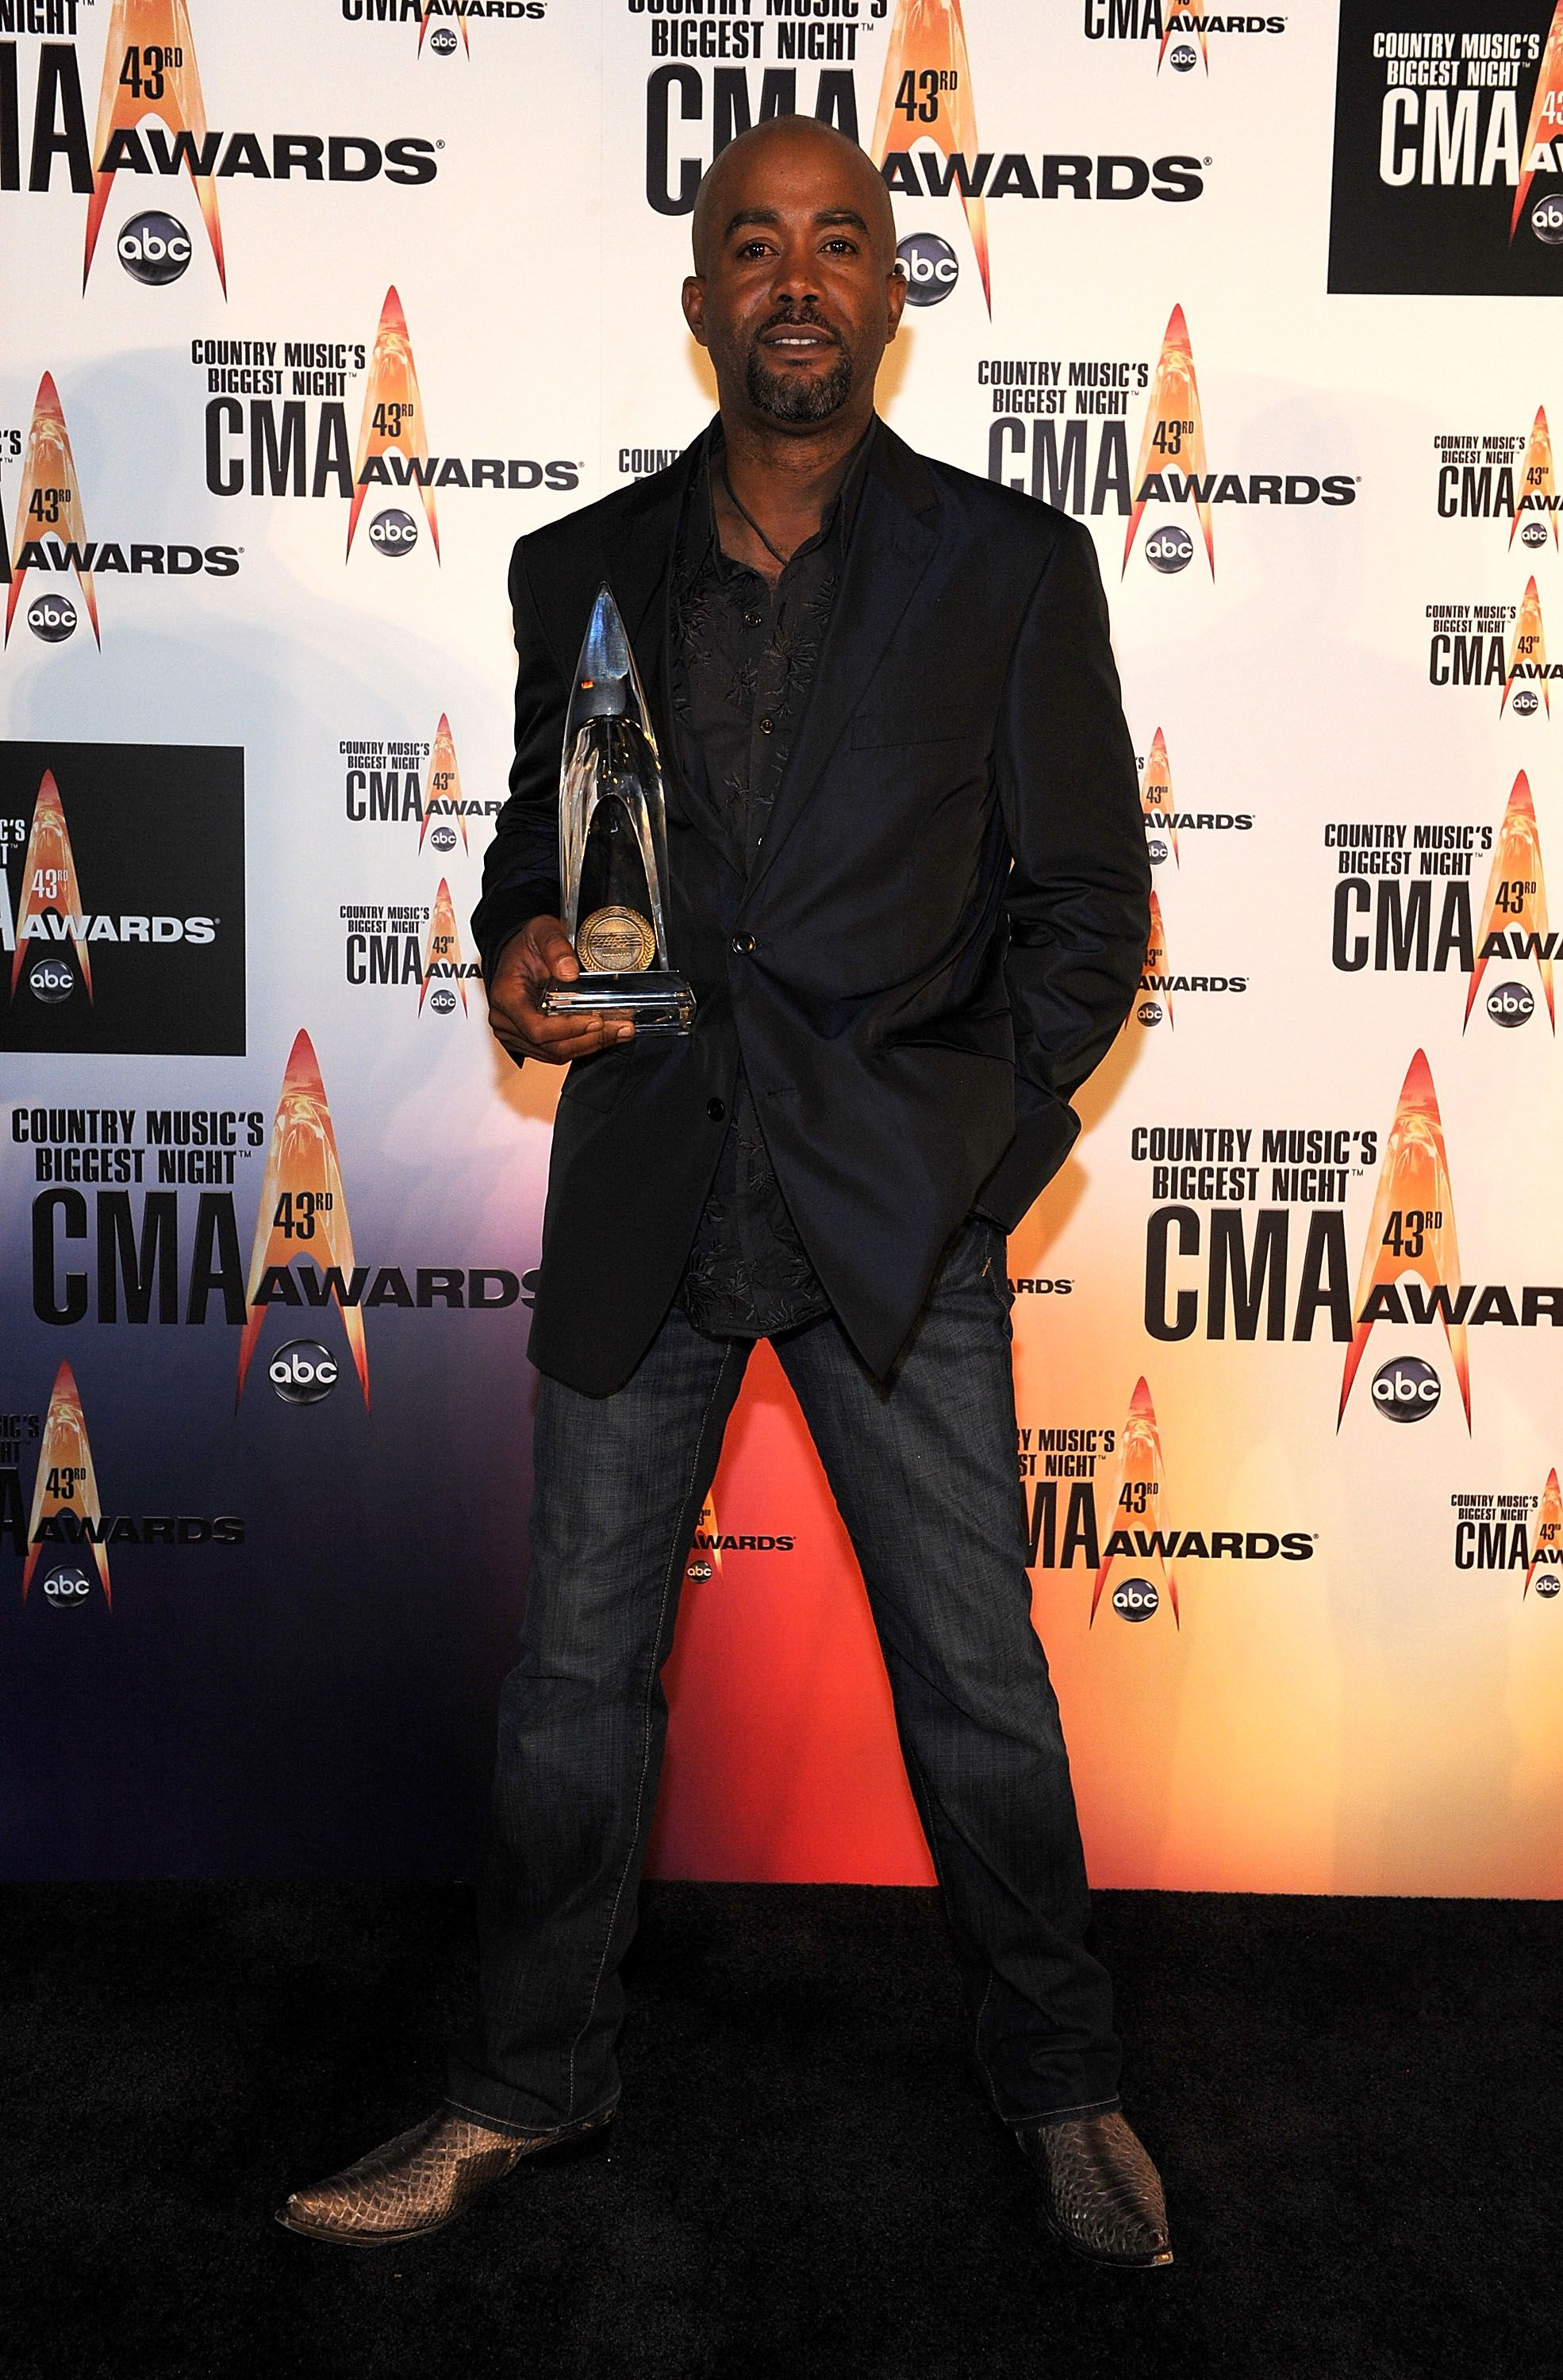 Darius Rucker at the Sommet Center on November 11, 2009 in Nashville, Tennessee. | Photo: Getty Images